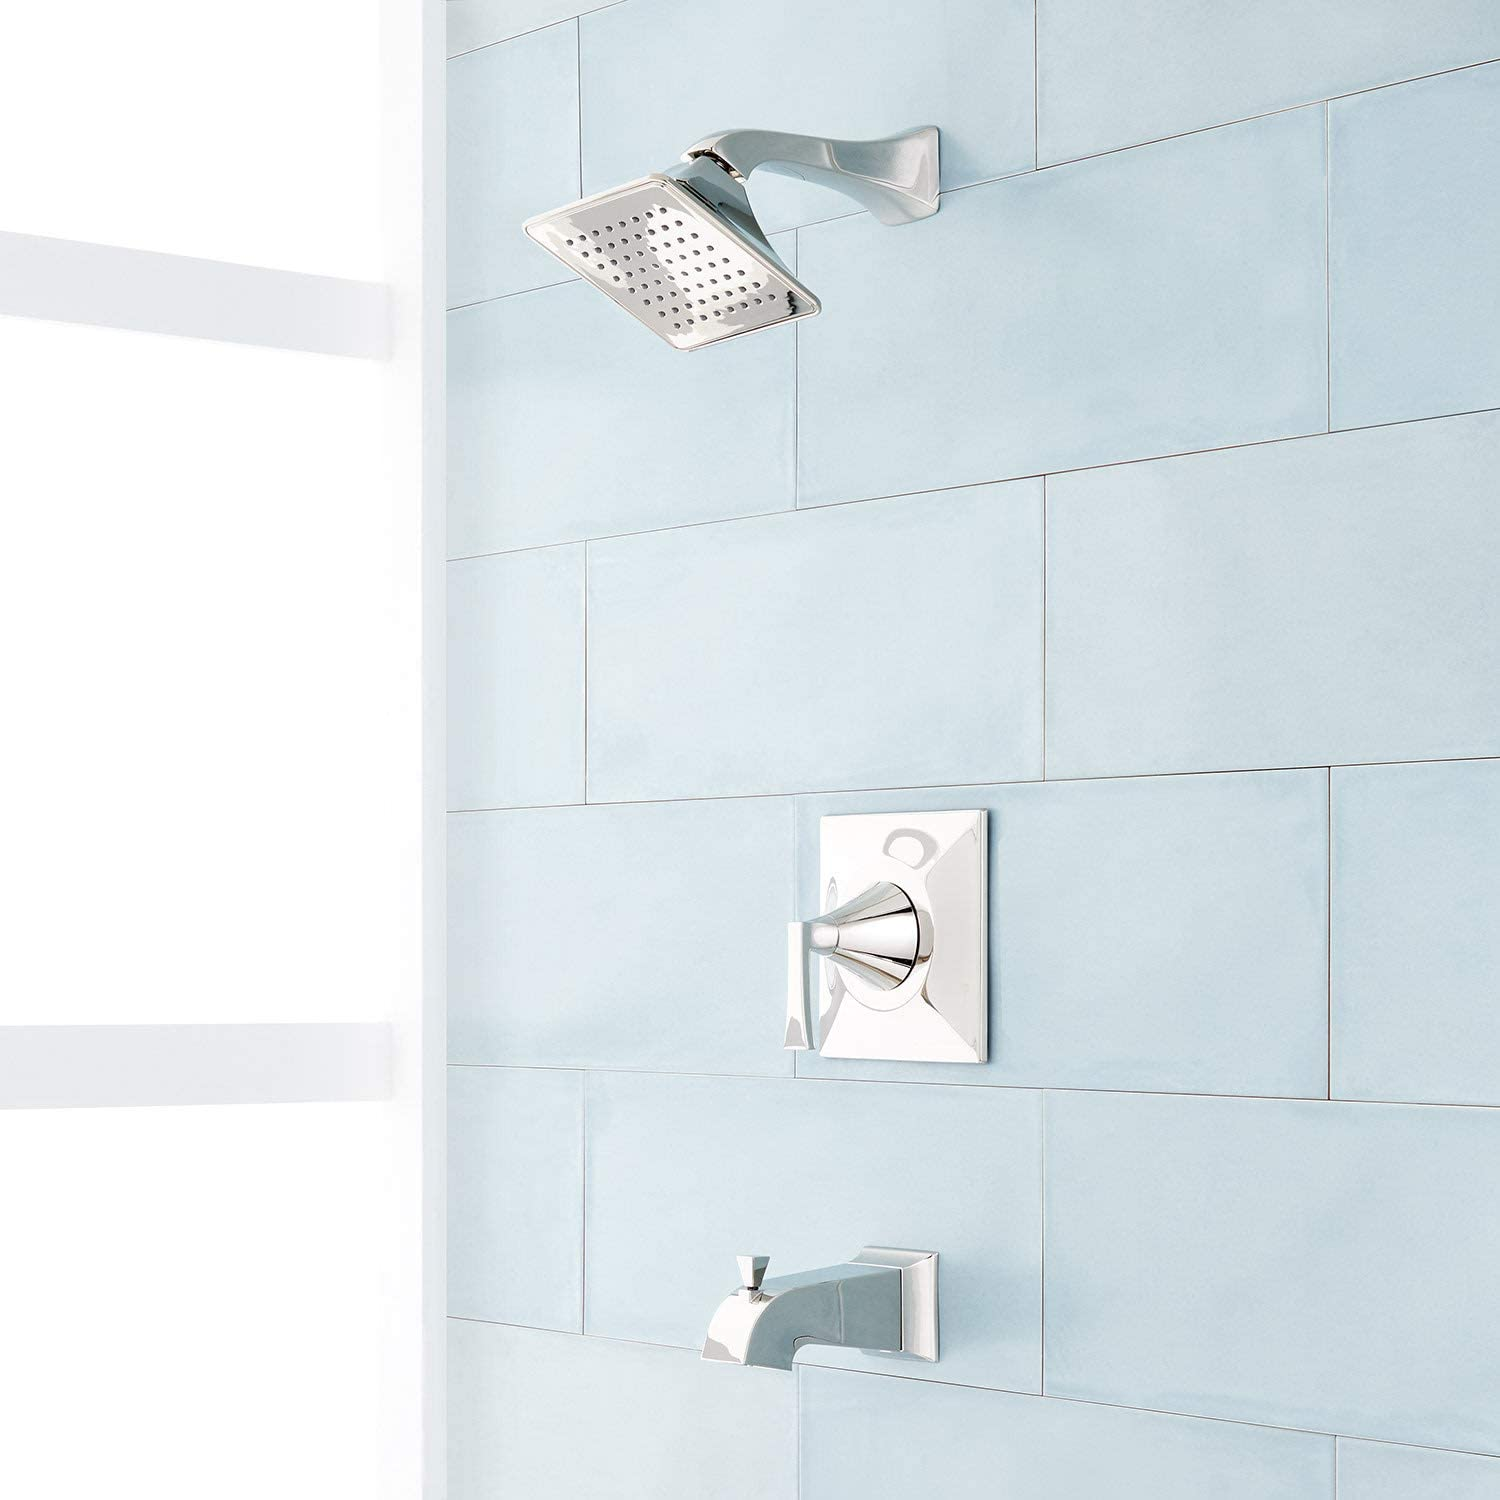 Signature Hardware 948888-6-LV Vilamonte Pressure Balanced Tub and Shower Trim Package with 1.8 GPM Single Function Shower Head